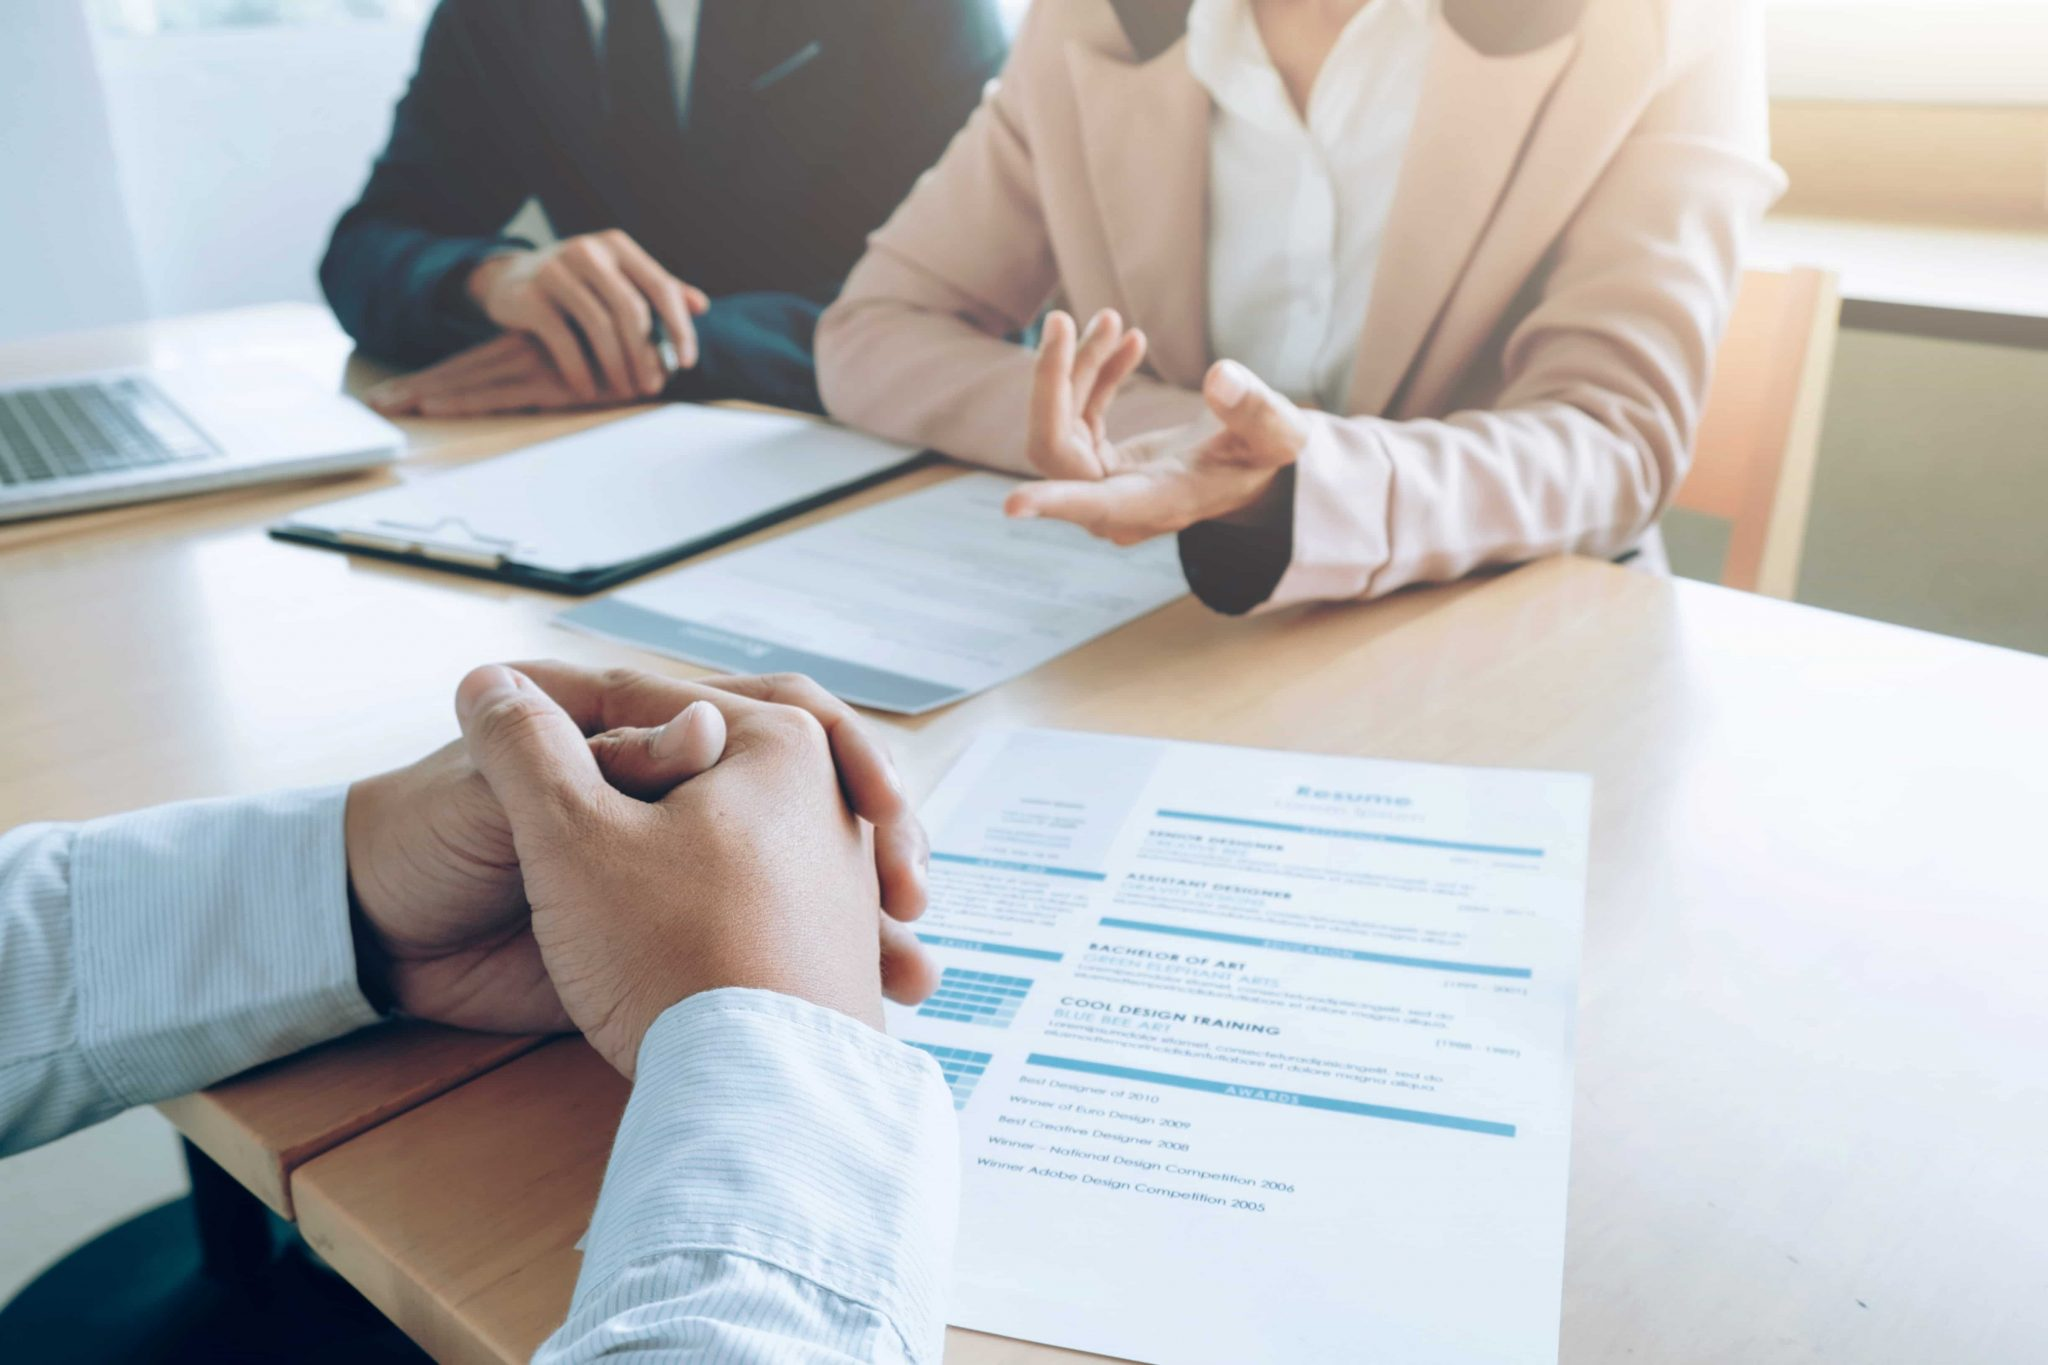 How to create an effective hiring approval process